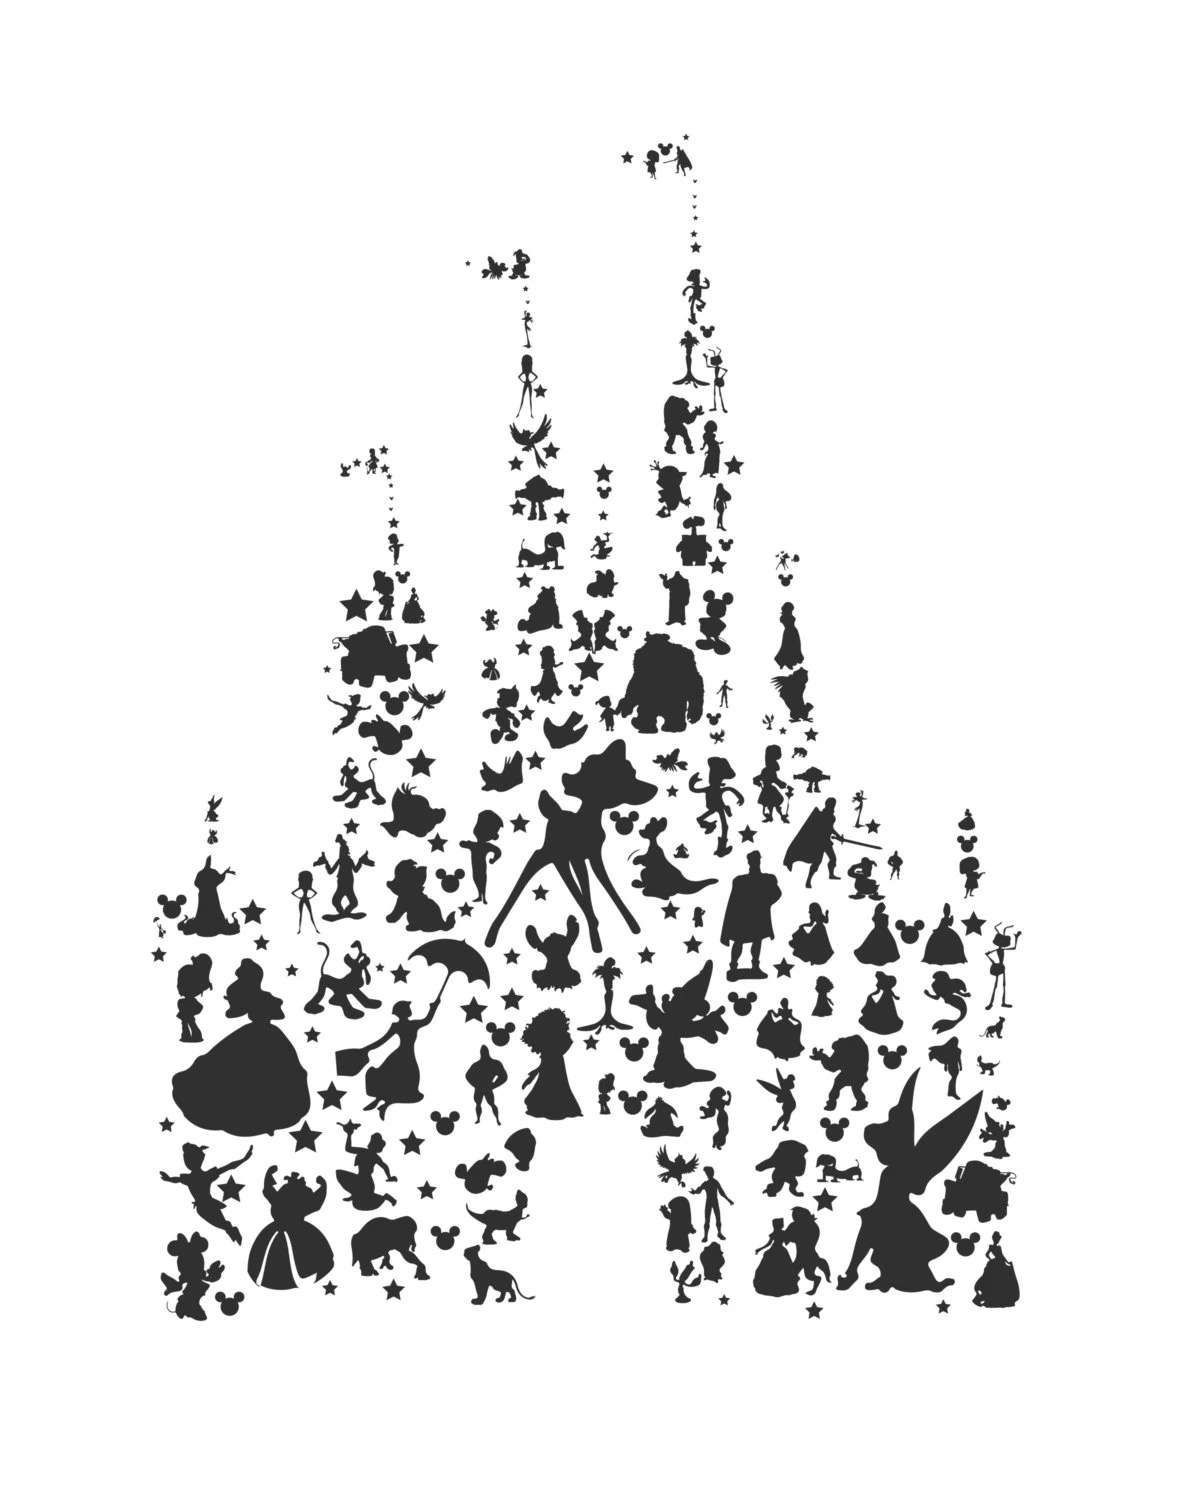 Disney Character Silhouettes Car Interior Design